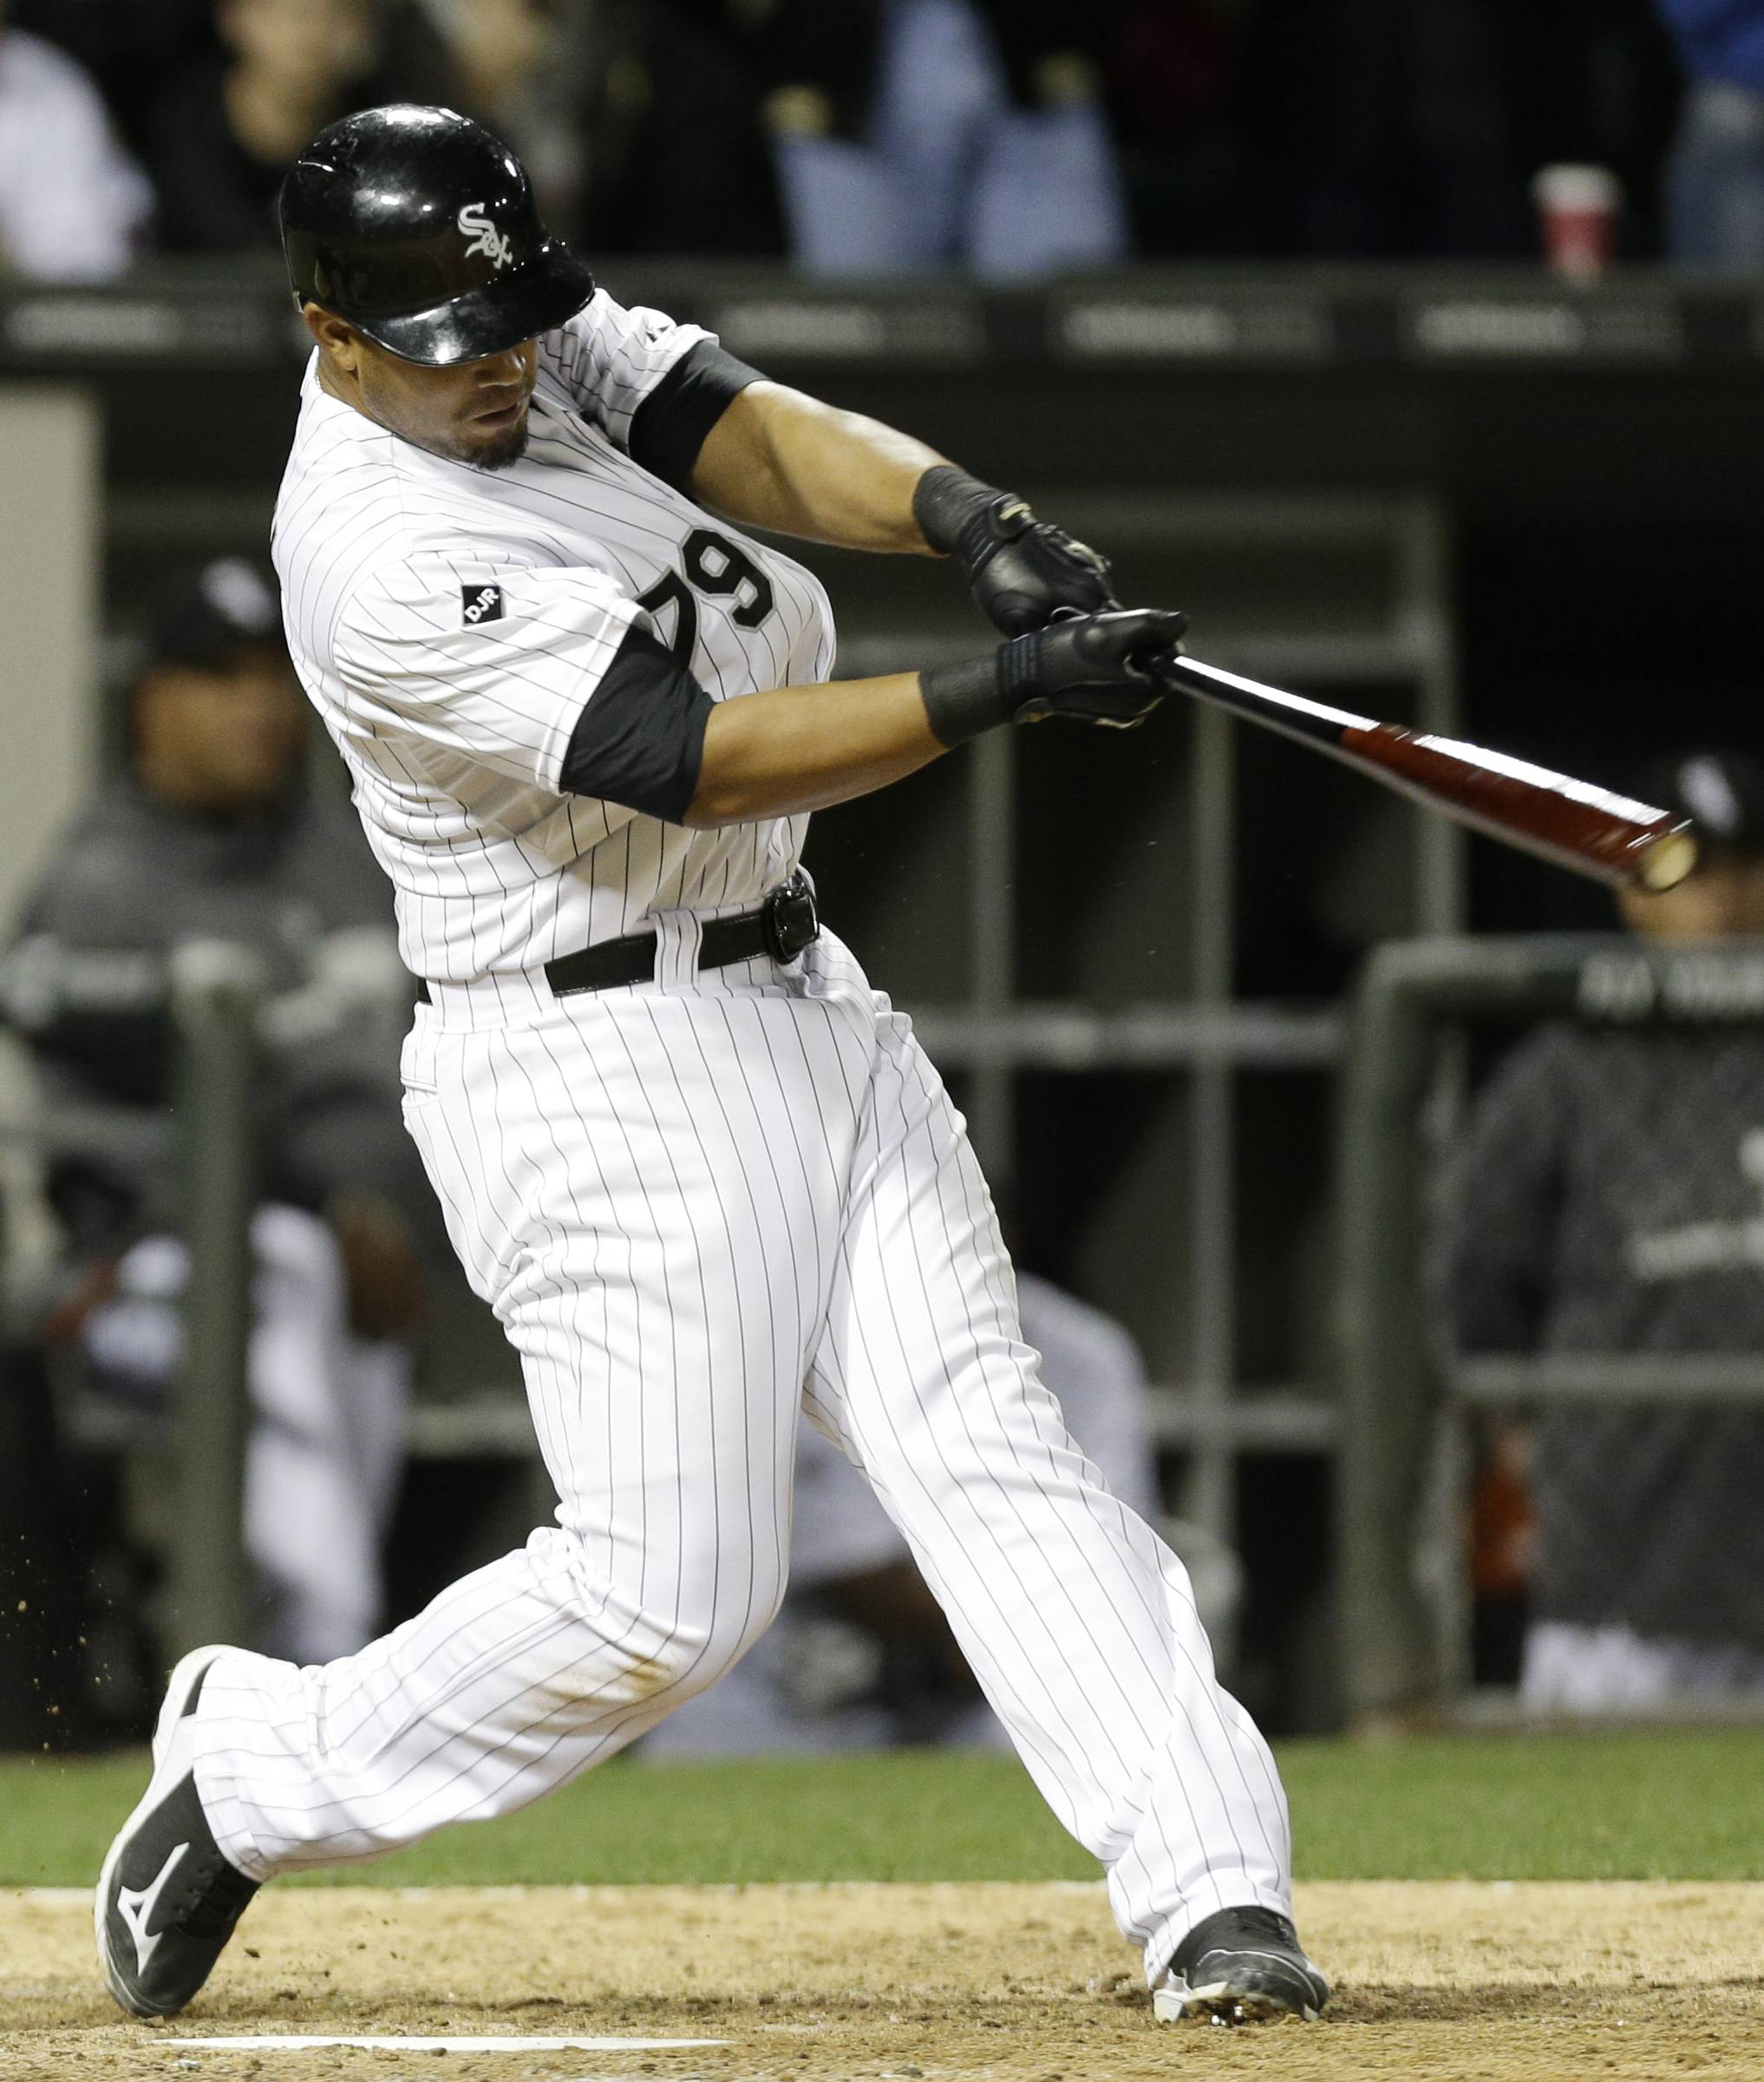 Jose Abreu hits a grand slam against theTampa Bay Rays during the ninth inning of a baseball game in Chicago on Friday, April 25, 2014. The White Sox won 9-6.